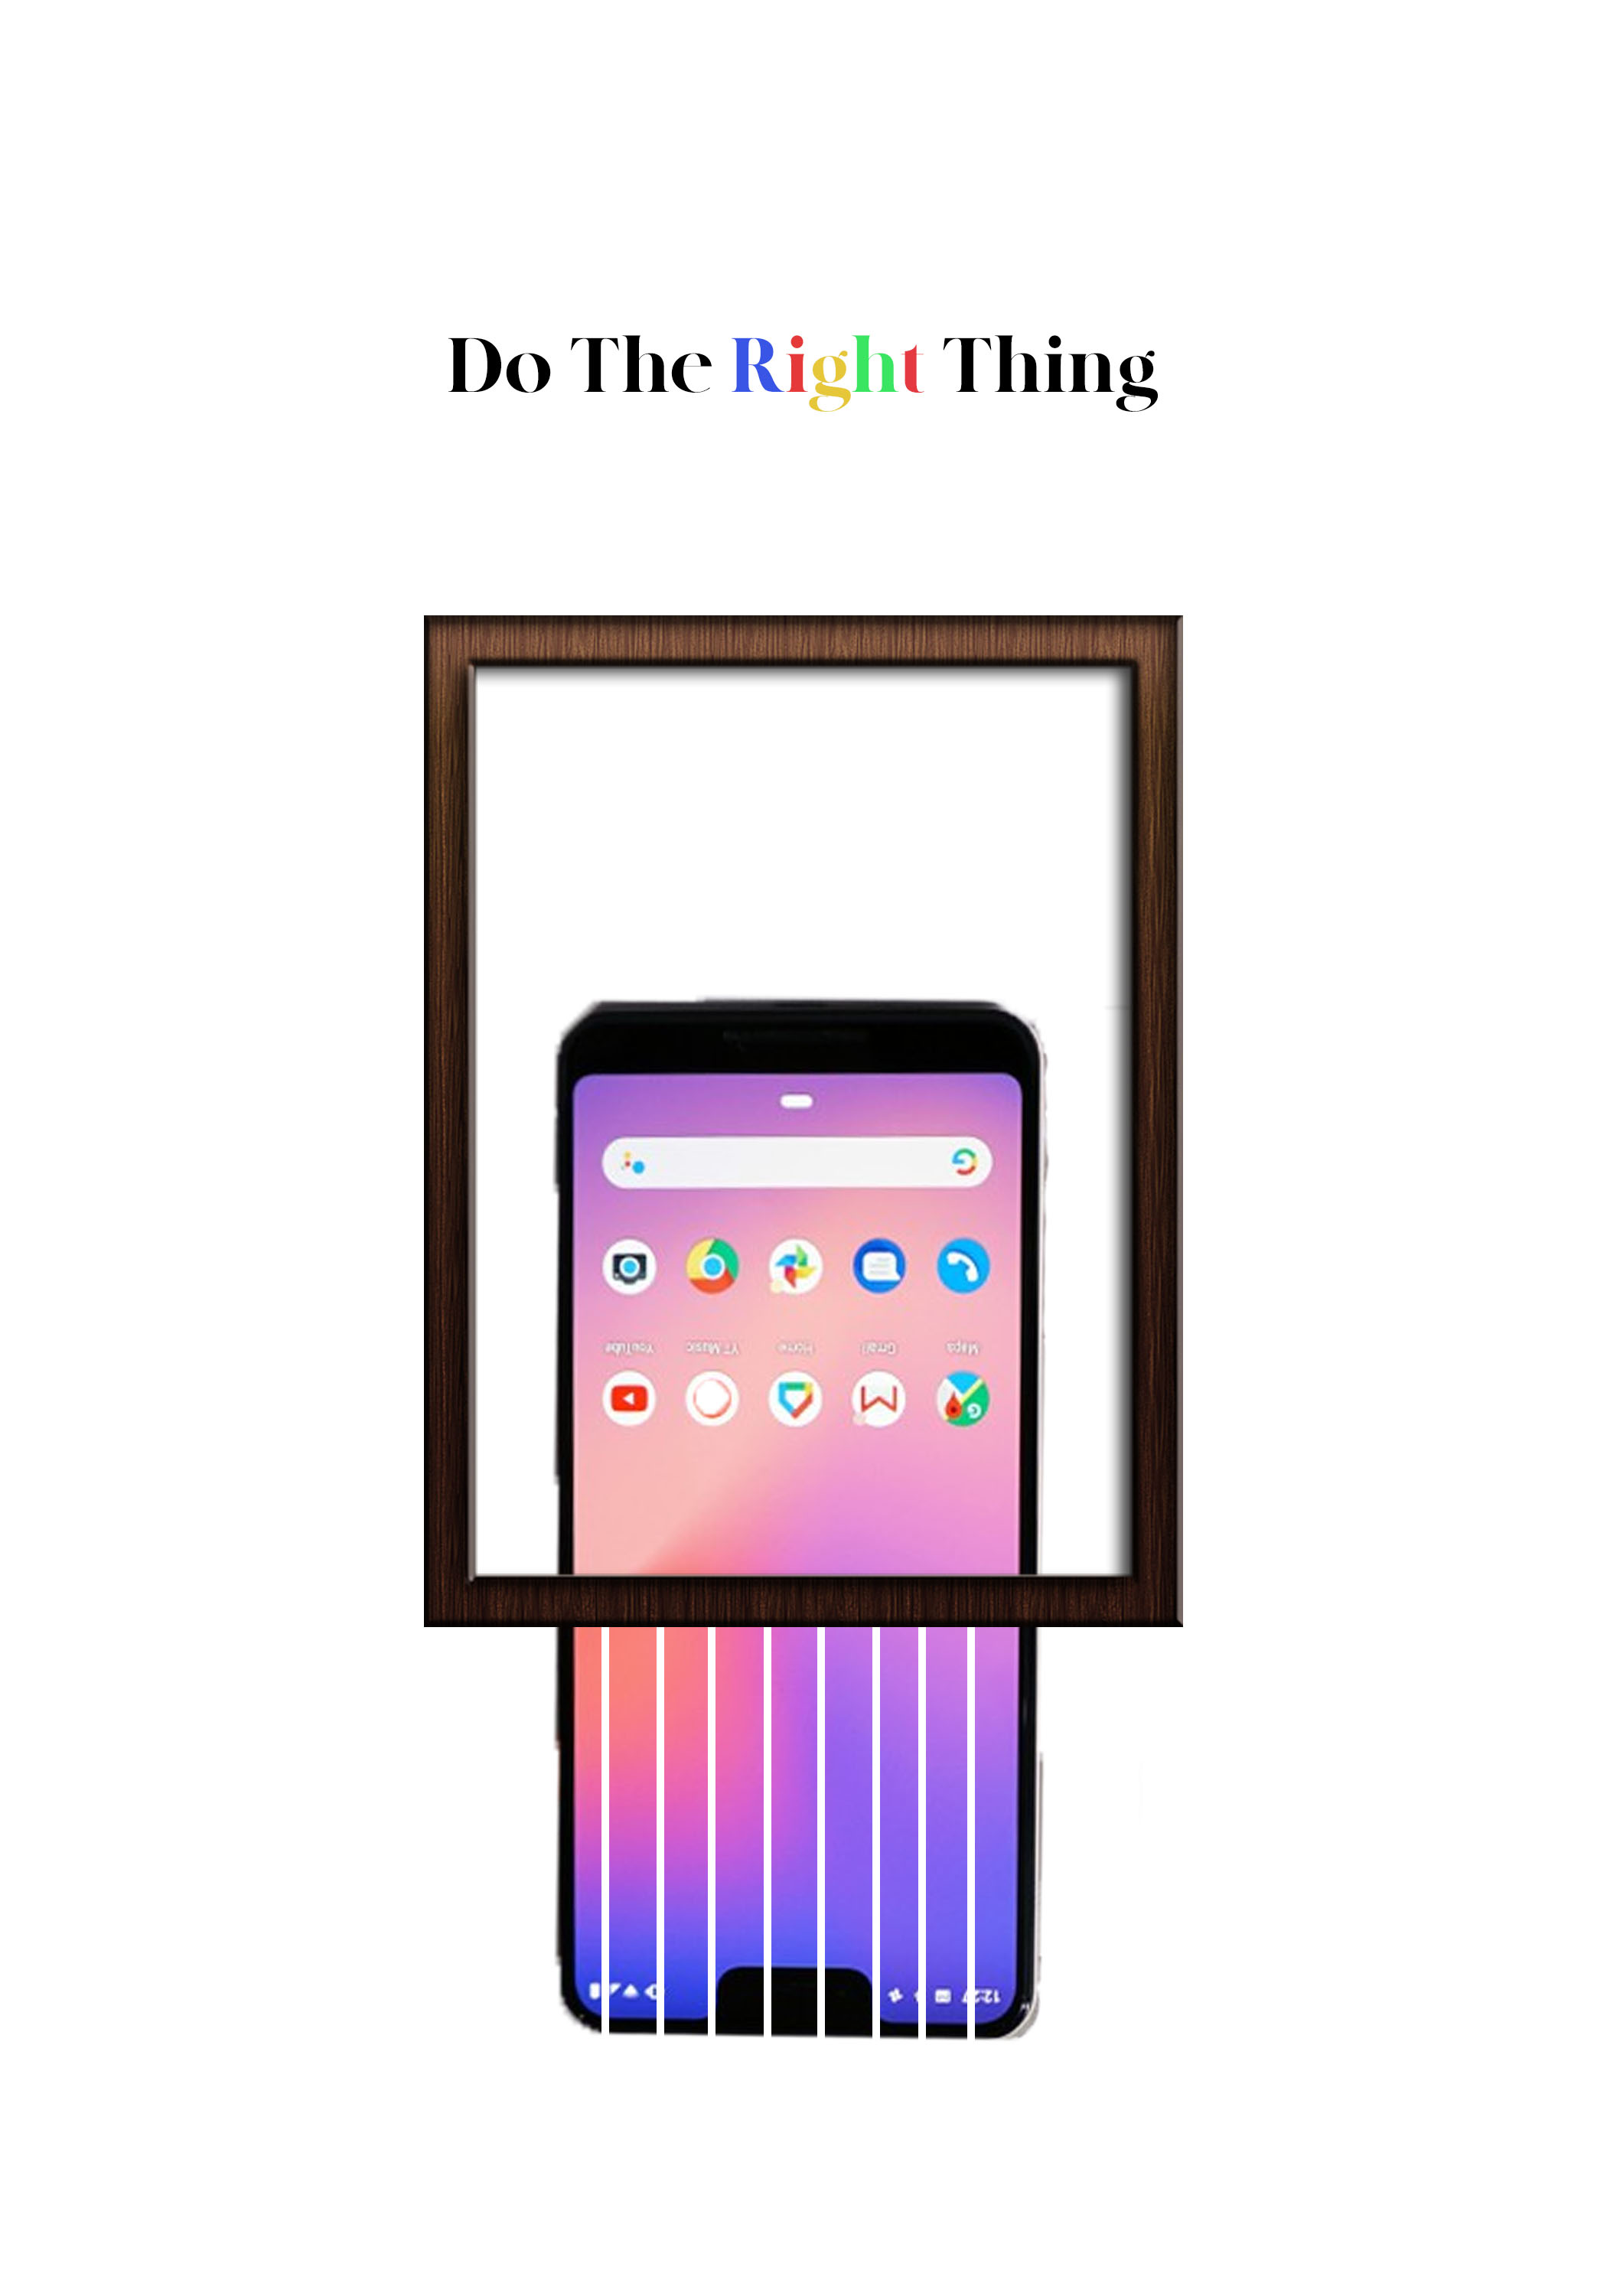 """""""Do The Right Thing"""". Banksy x Google Pixel 3 Inspo"""